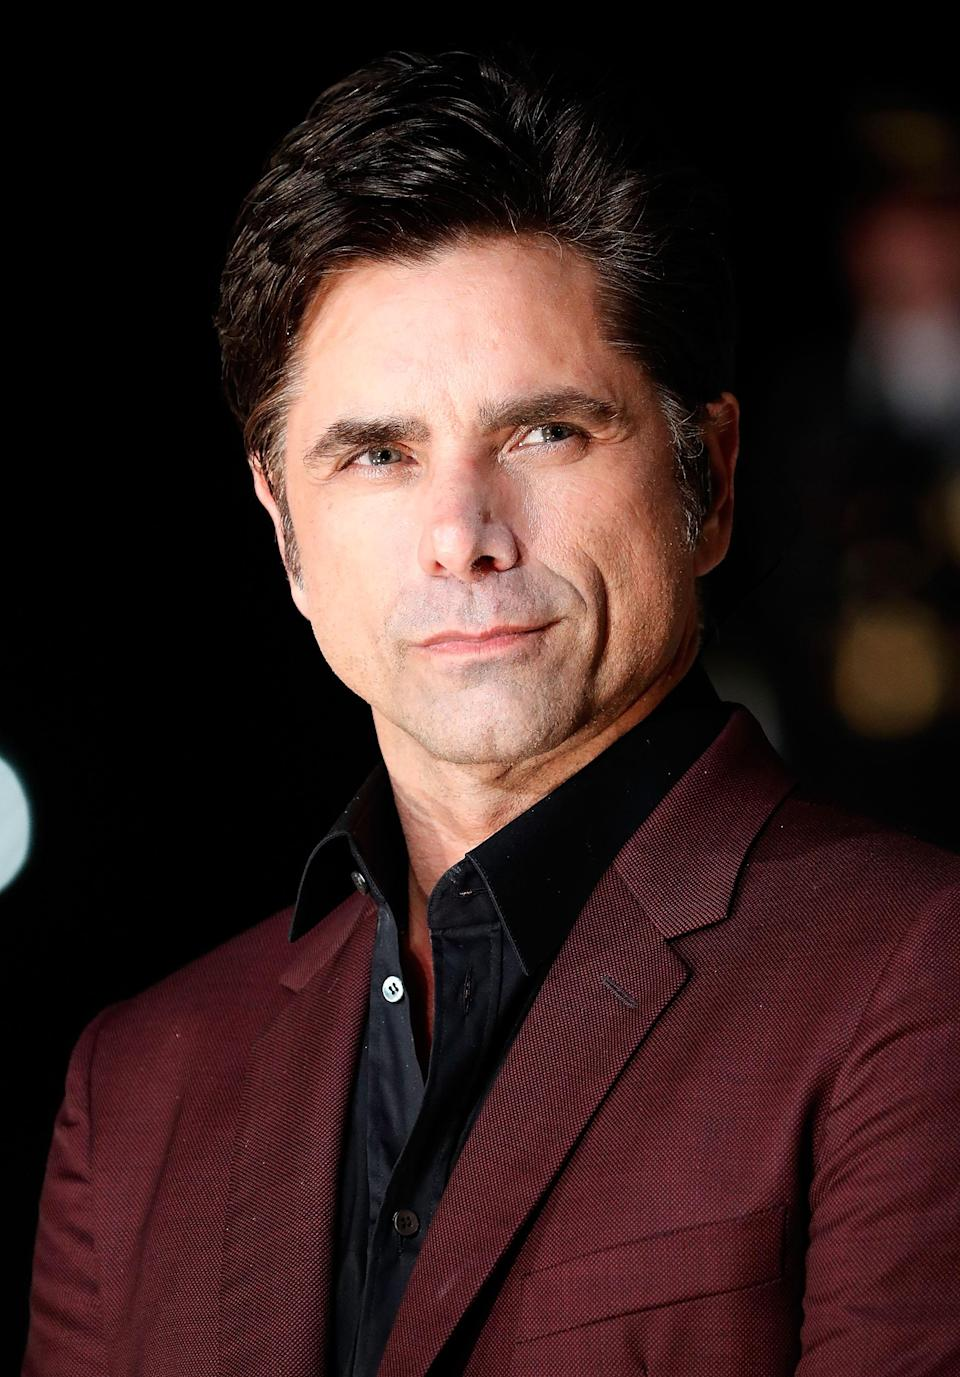 John Stamos and wife Caitlin McHugh welcomed son Billy in April. (Photo: Paul Morigi/Getty Images for Capital Concerts Inc.)